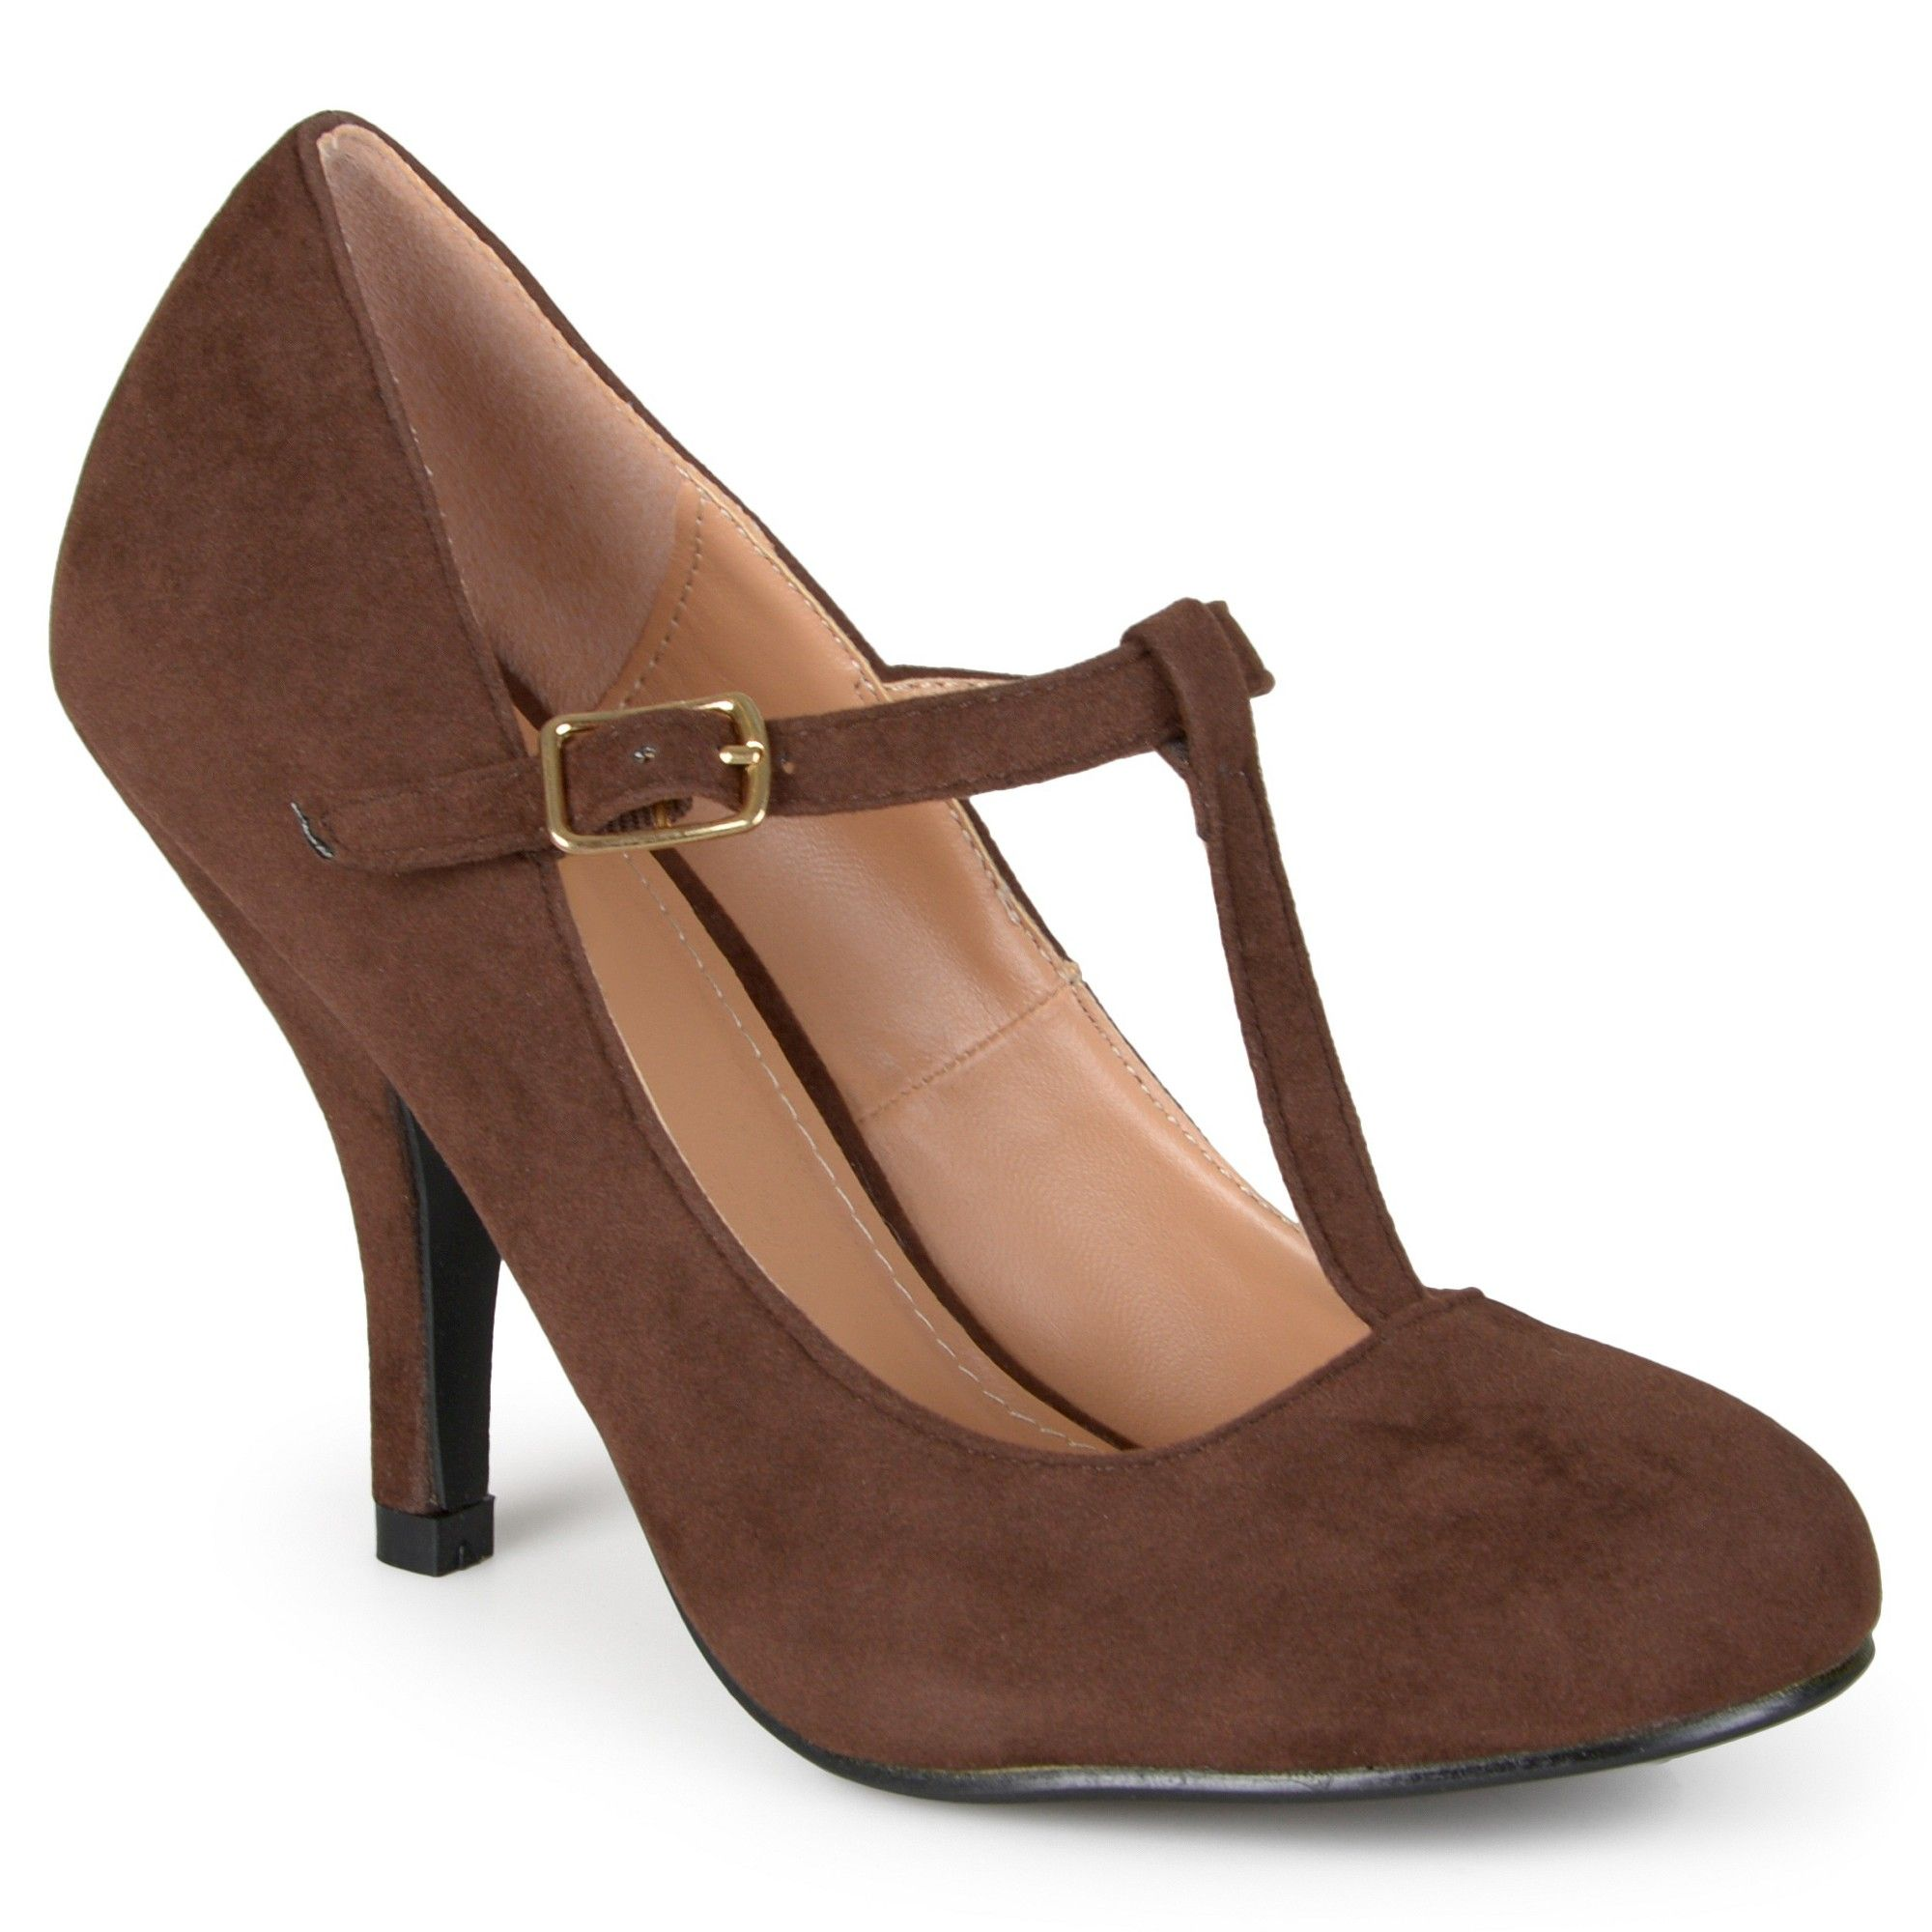 c9a16cef8f7d Women s Journee Collection Wide Width Suede T-Strap Mary Jane Pumps - Brown  8.5W